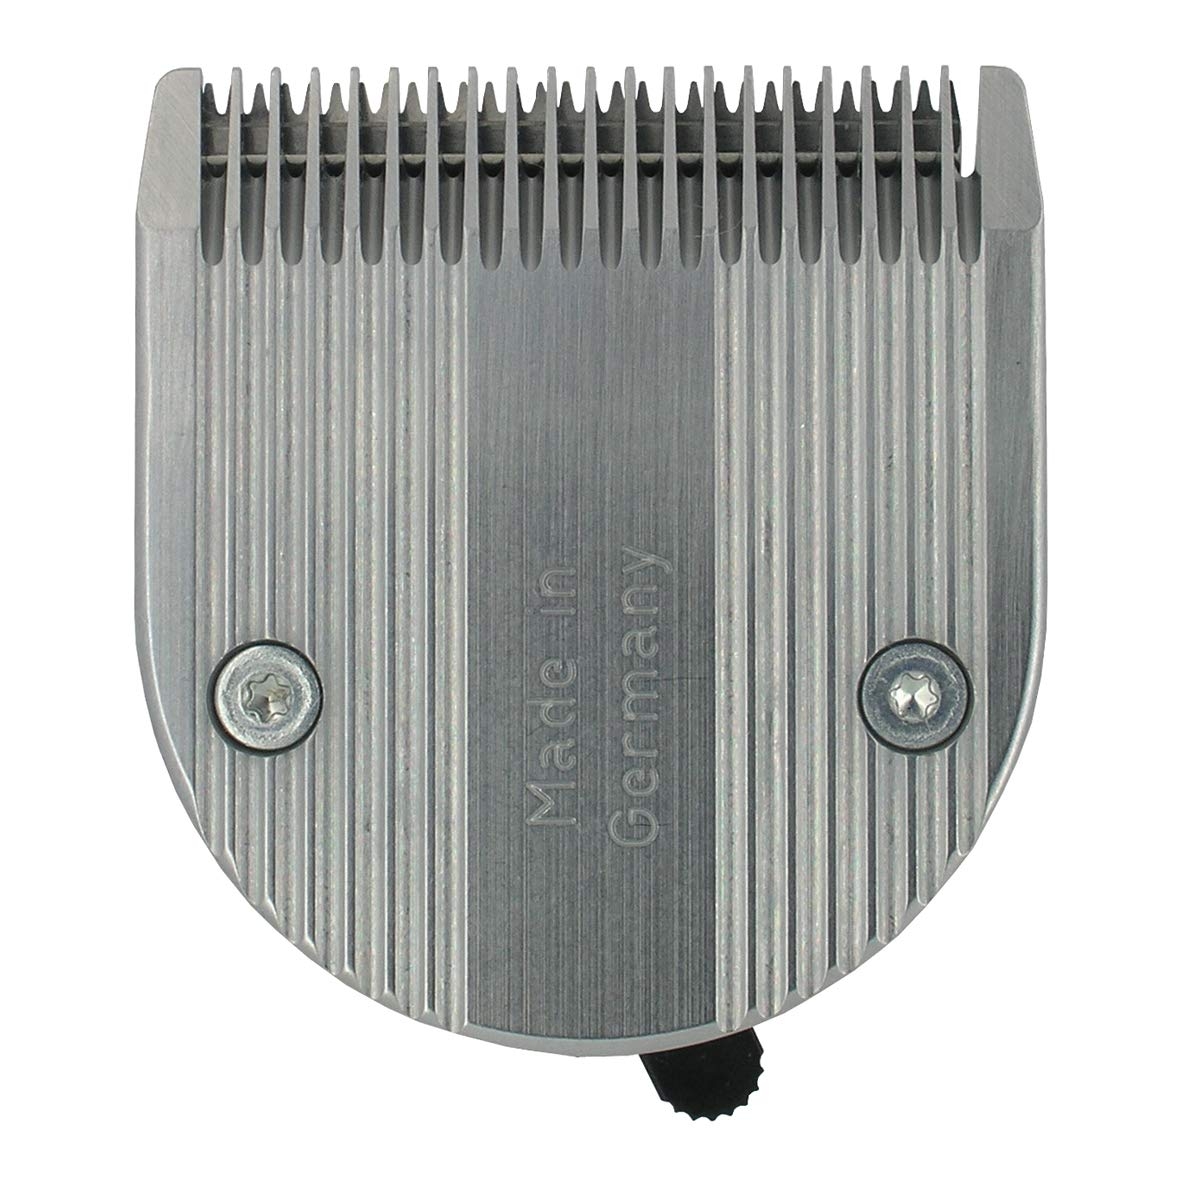 Replacement blade for Moser Arco Clipper